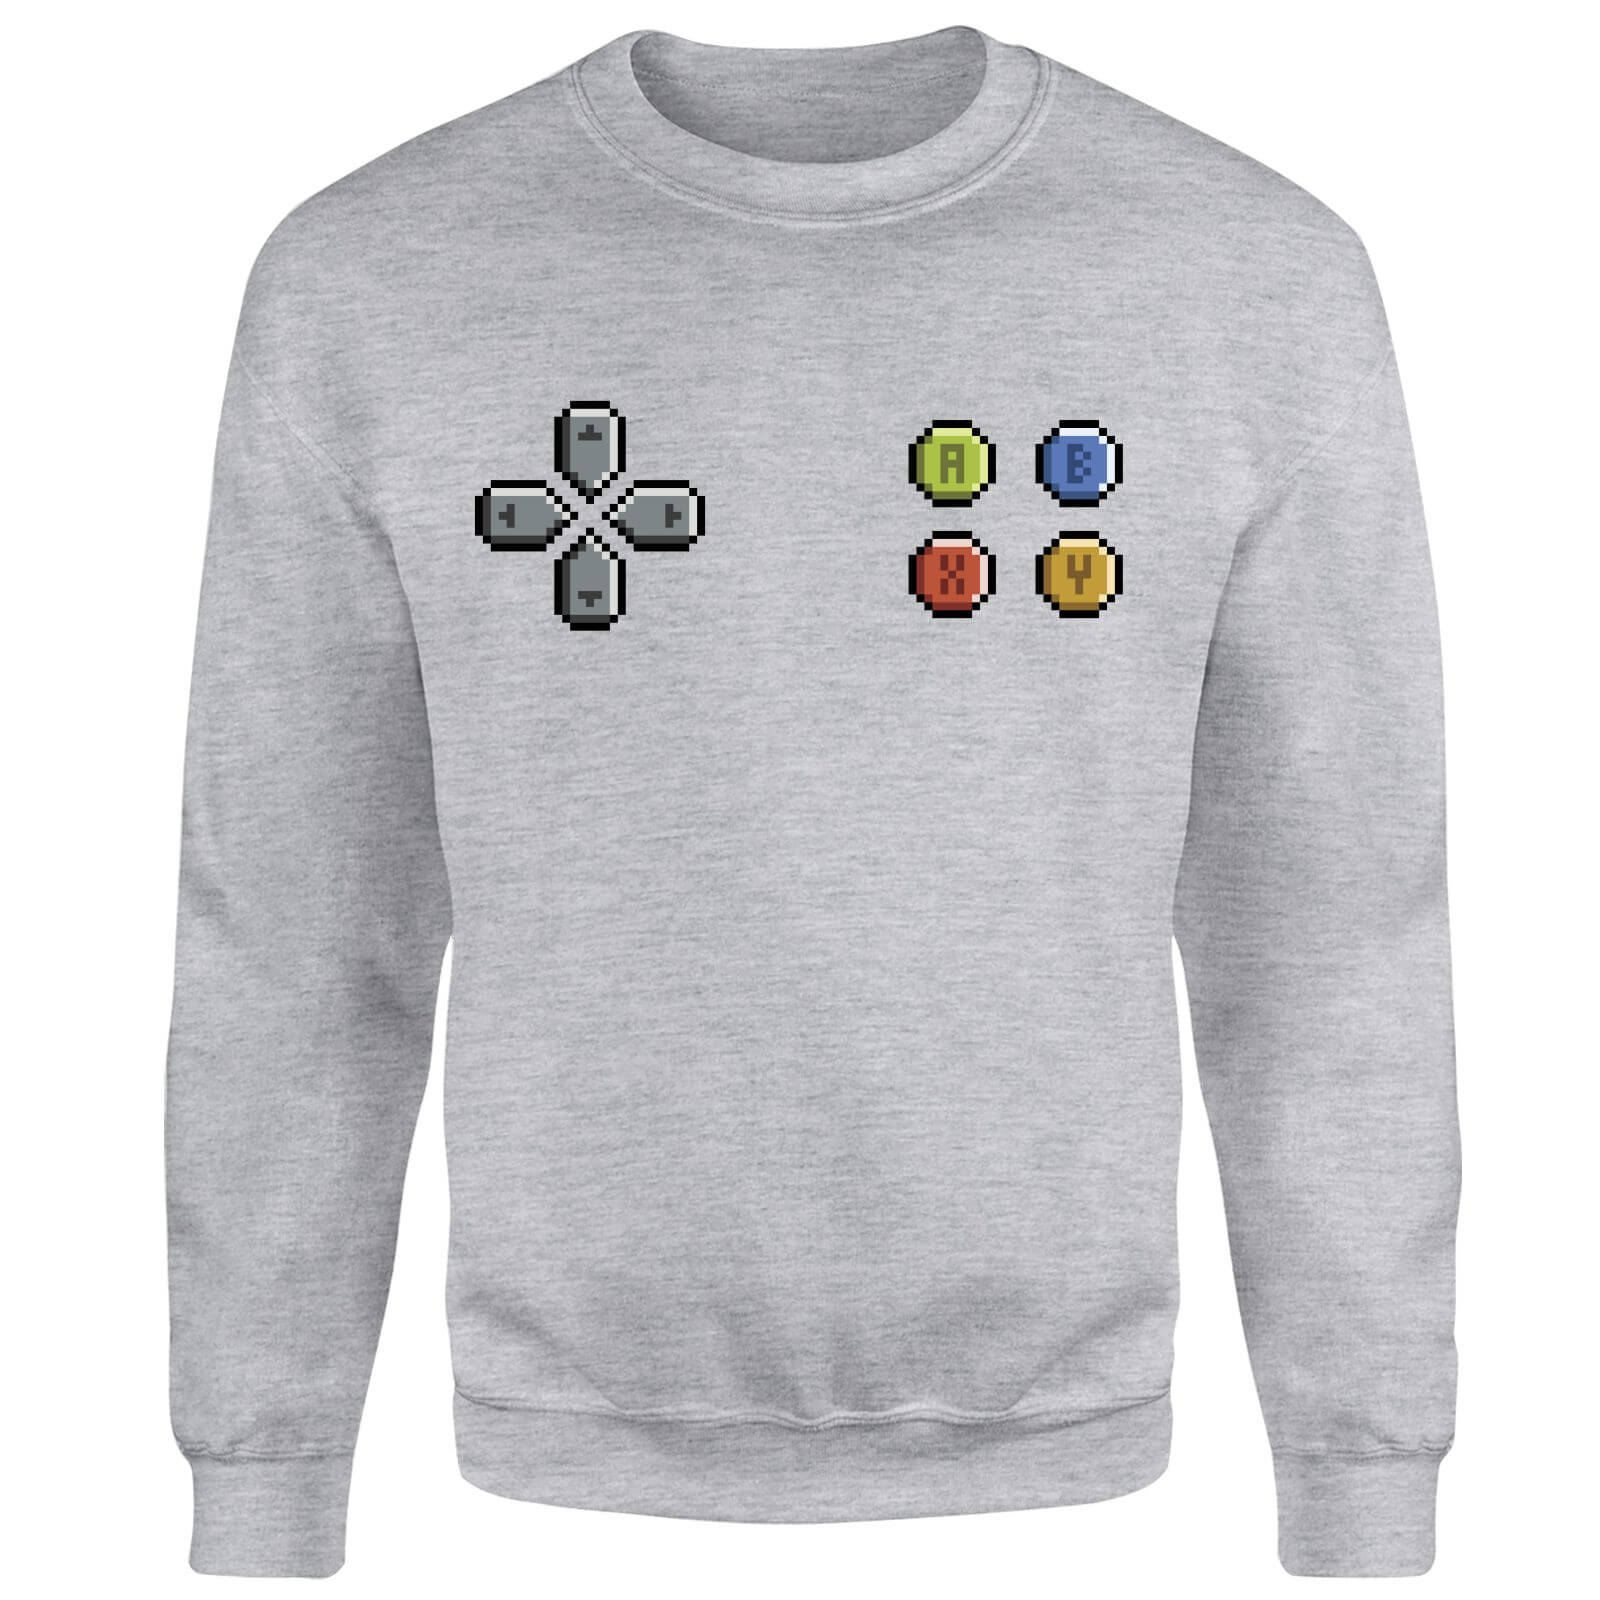 Pad Gaming Sweatshirt - Grey